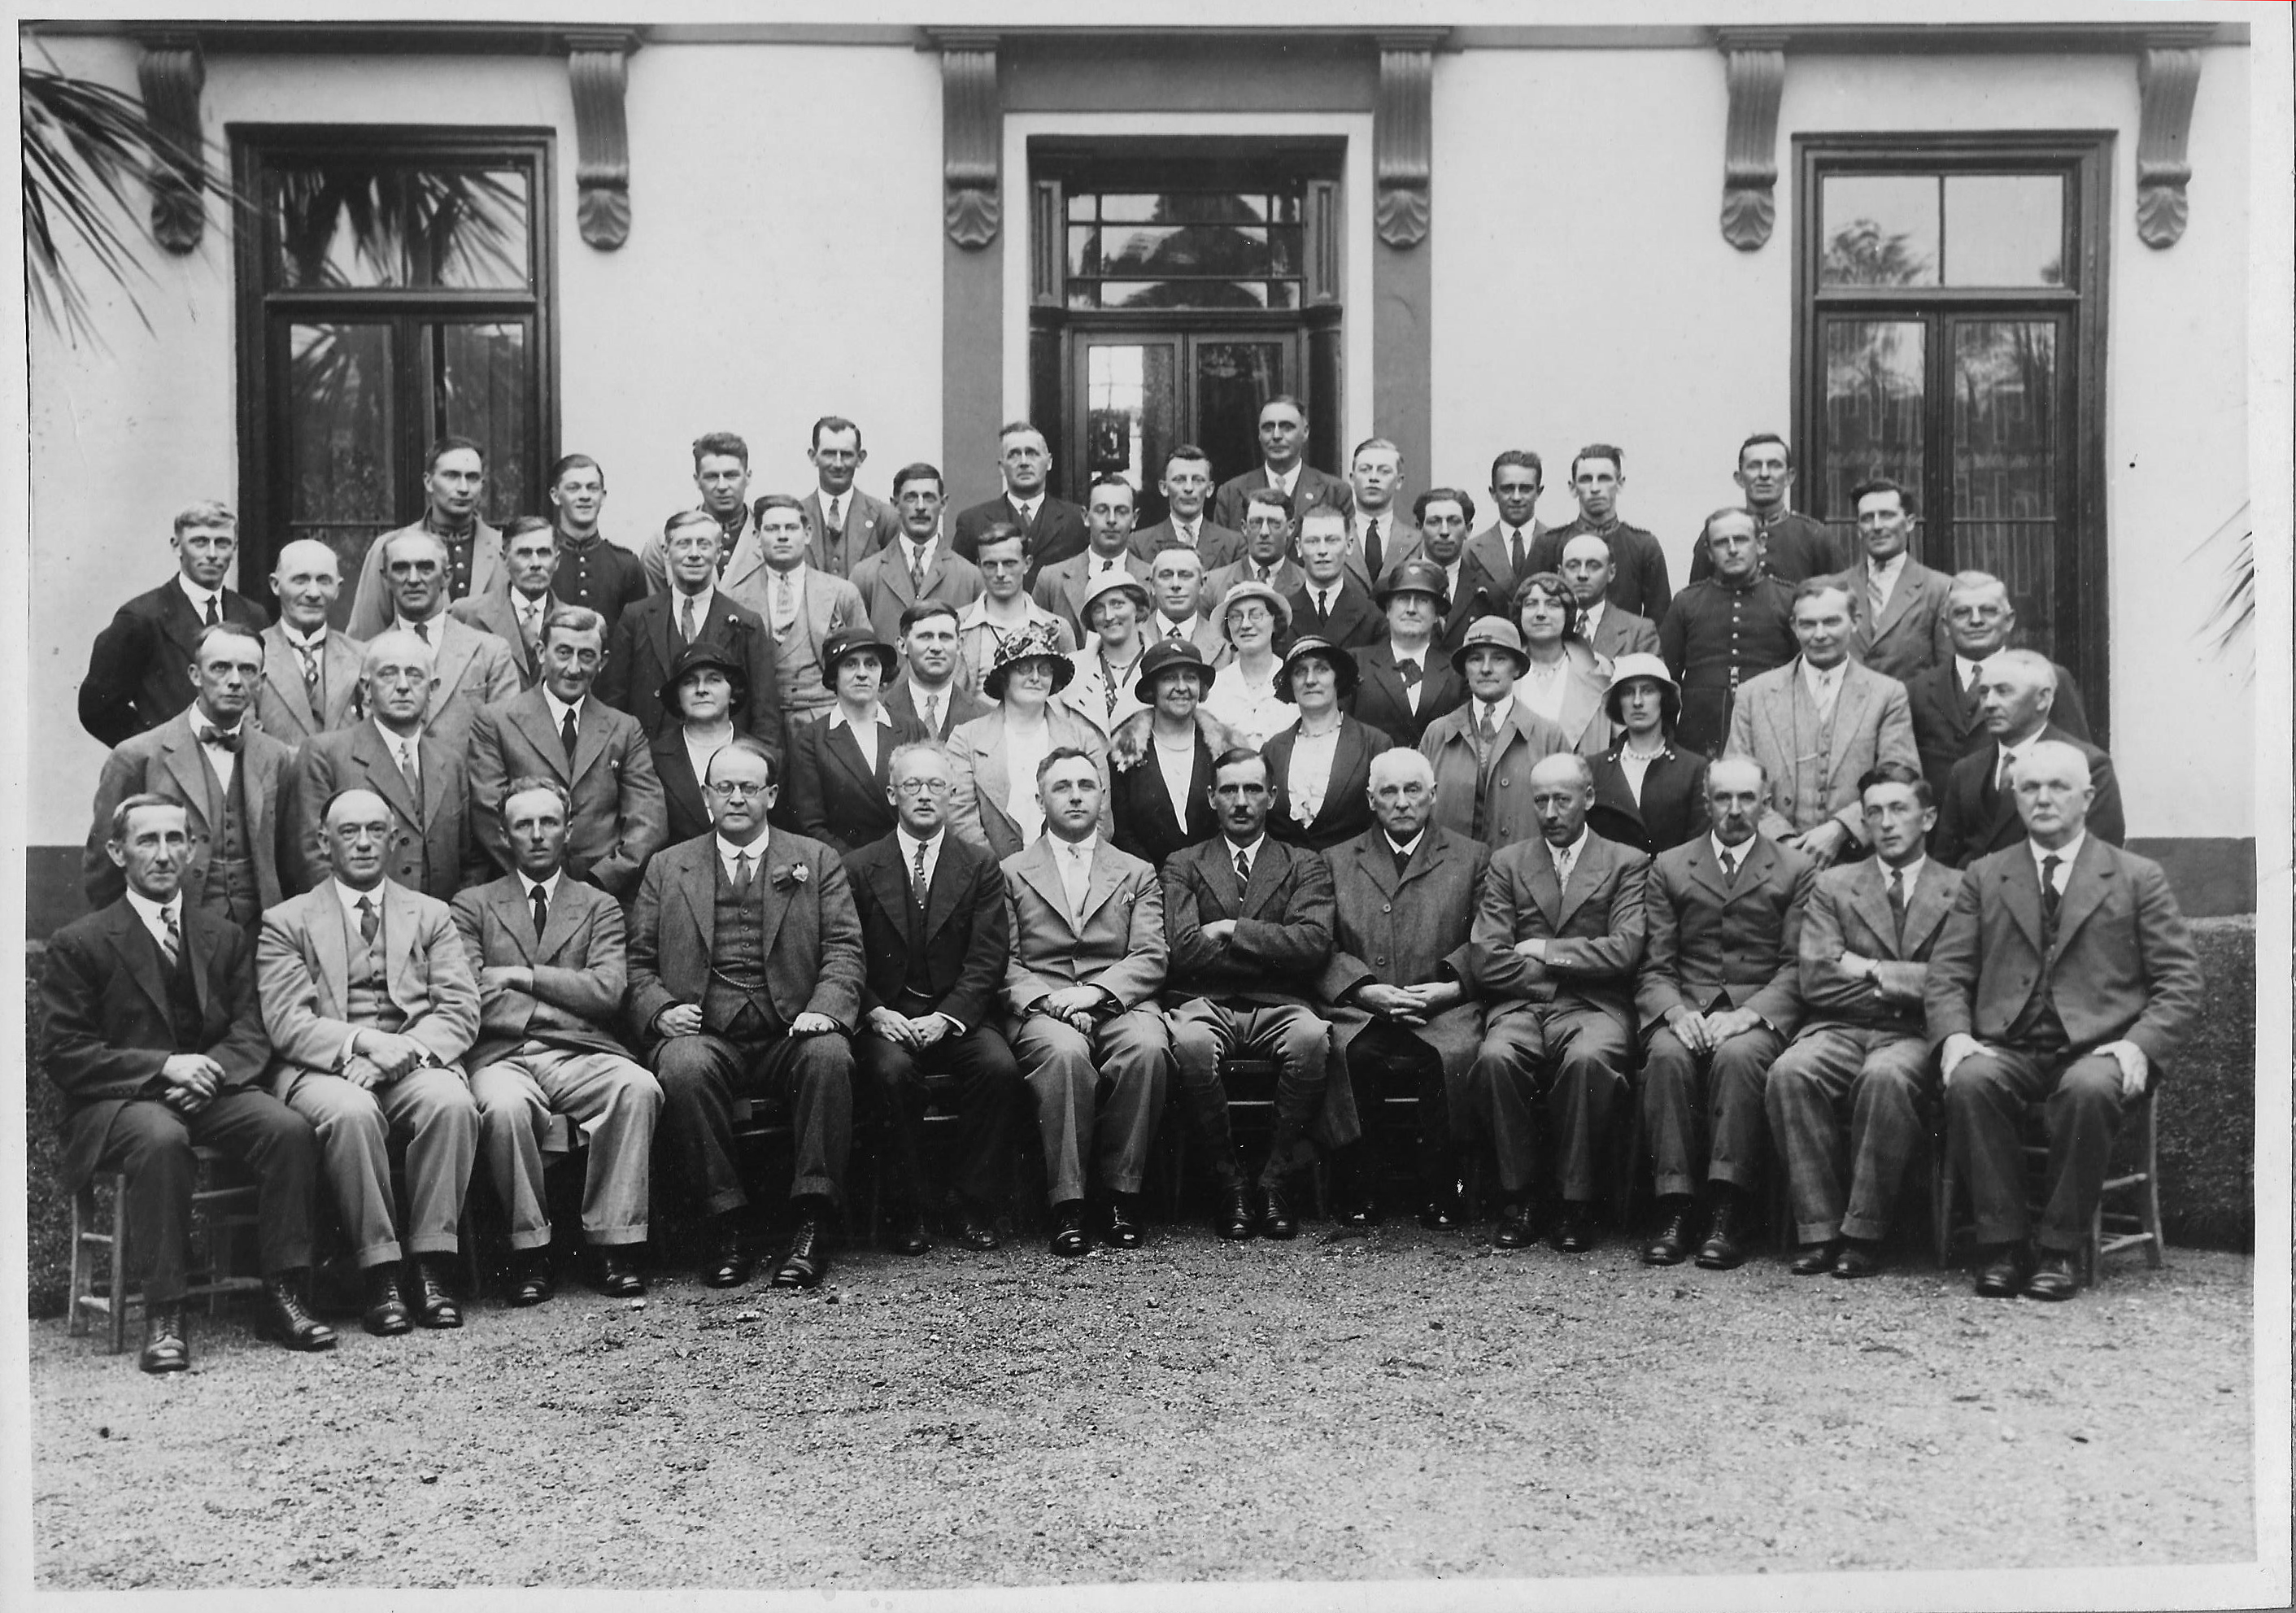 1934 - Centenary photo of Show Officials